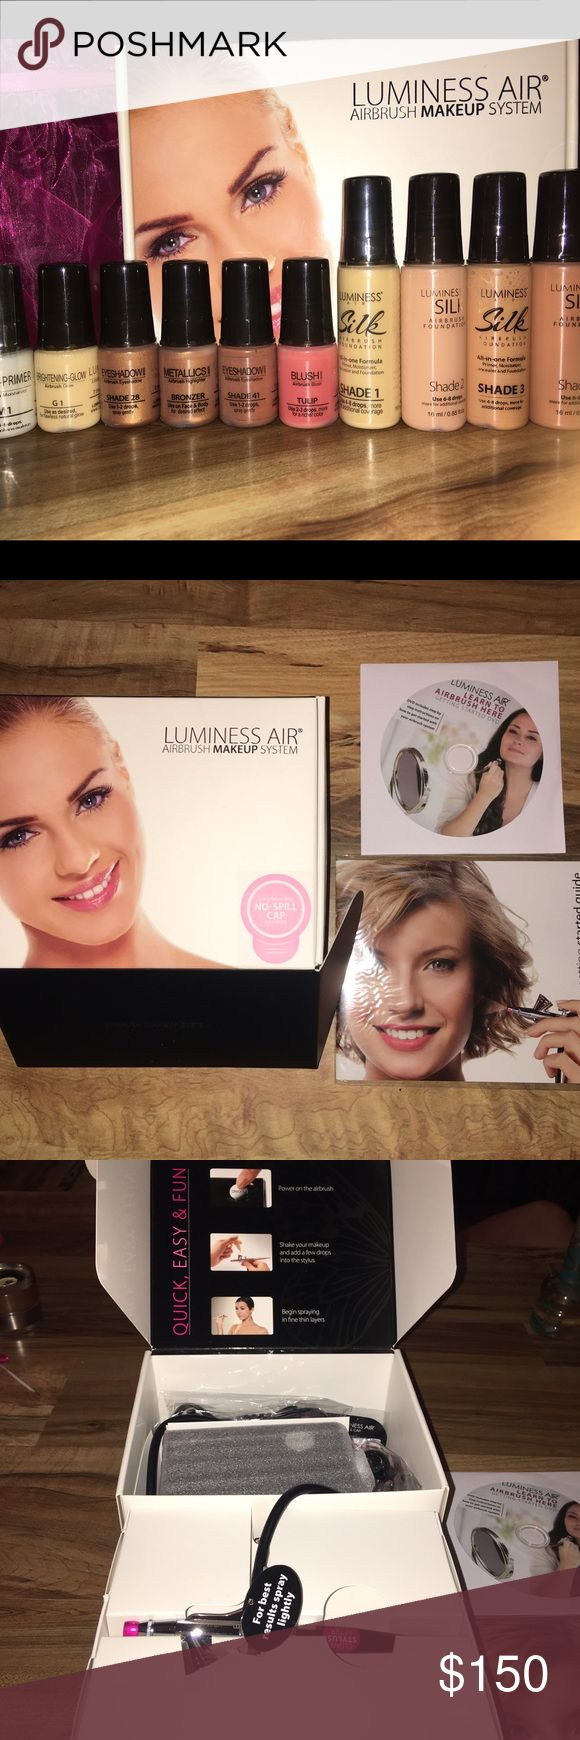 ❤️Luminess Air Airbrush System with Makeup Bundle ❤️Luminess Air Airbrush System with Makeup Bundle used once to try but decided it's too time consuming and now I must sell!! It was a gift so please make me an offer and get yourself an awesome easy to use airbrush system with makeup included in this bundle!! 👍🏼 This is the starter kit so you have everything to get started!! Luminess Air Makeup